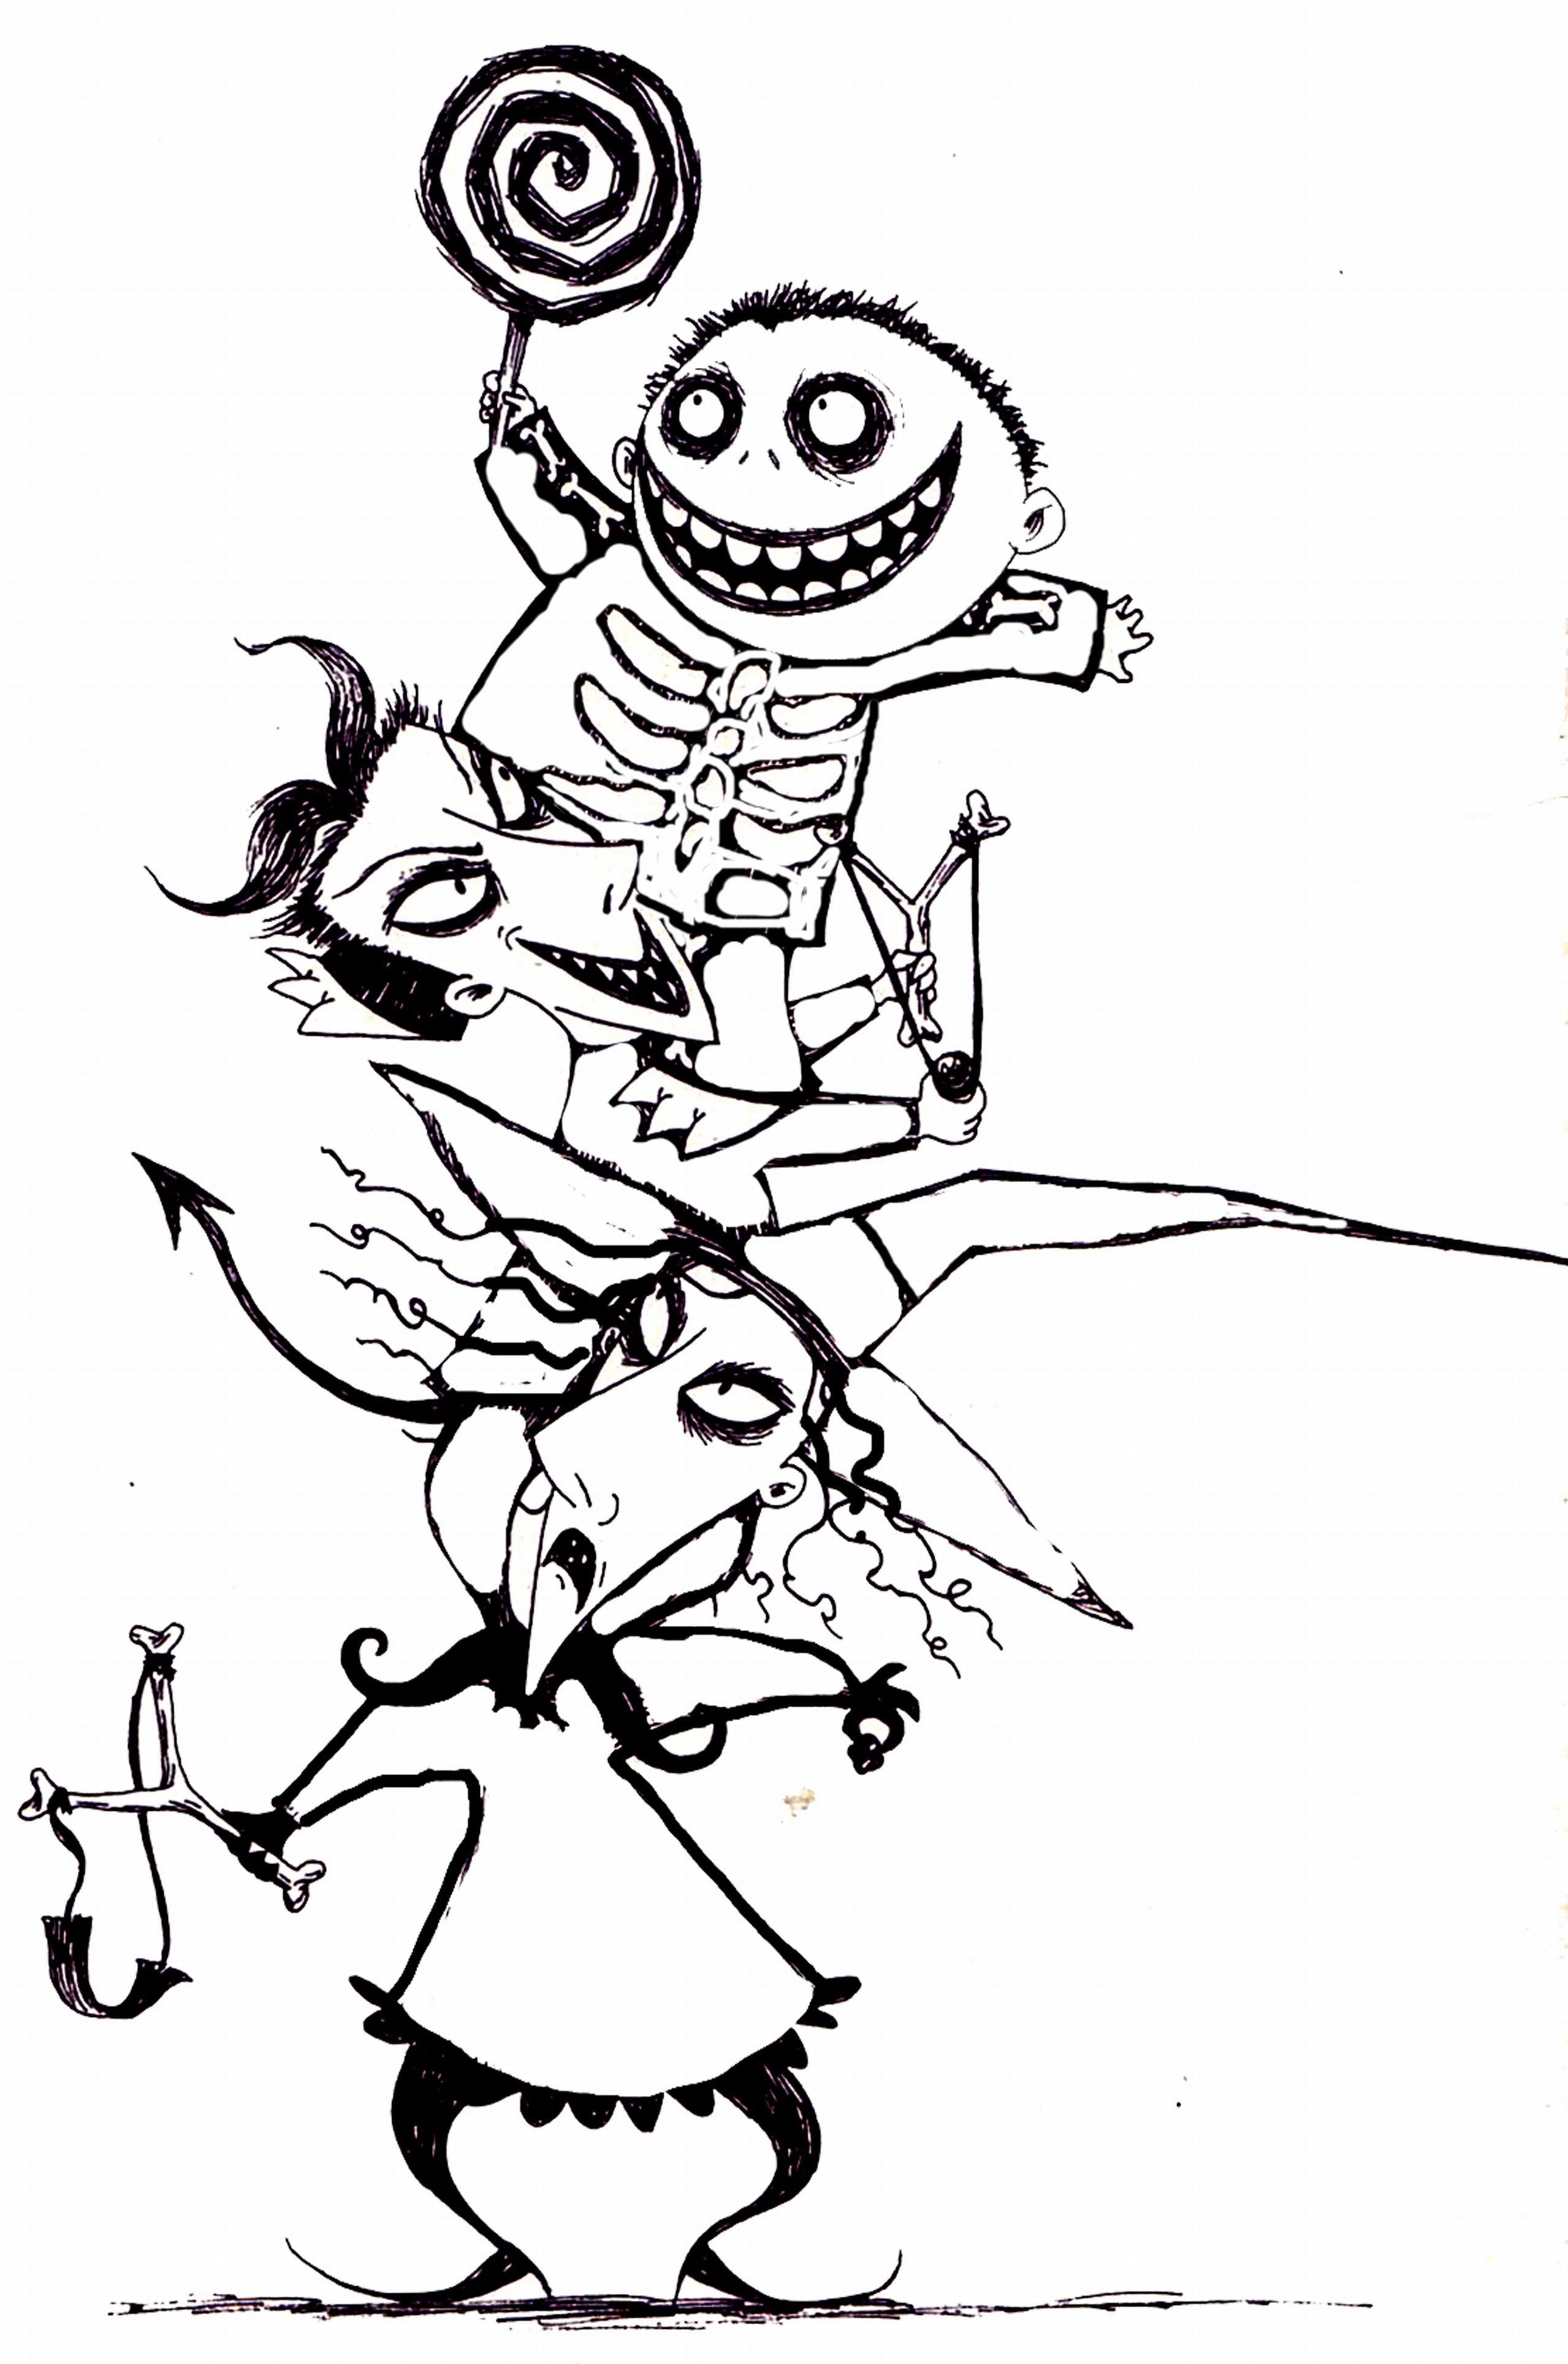 Nightmare Before Christmas Coloring Pages Printable With Pin By Michelle Poteat On Picture Pinterest